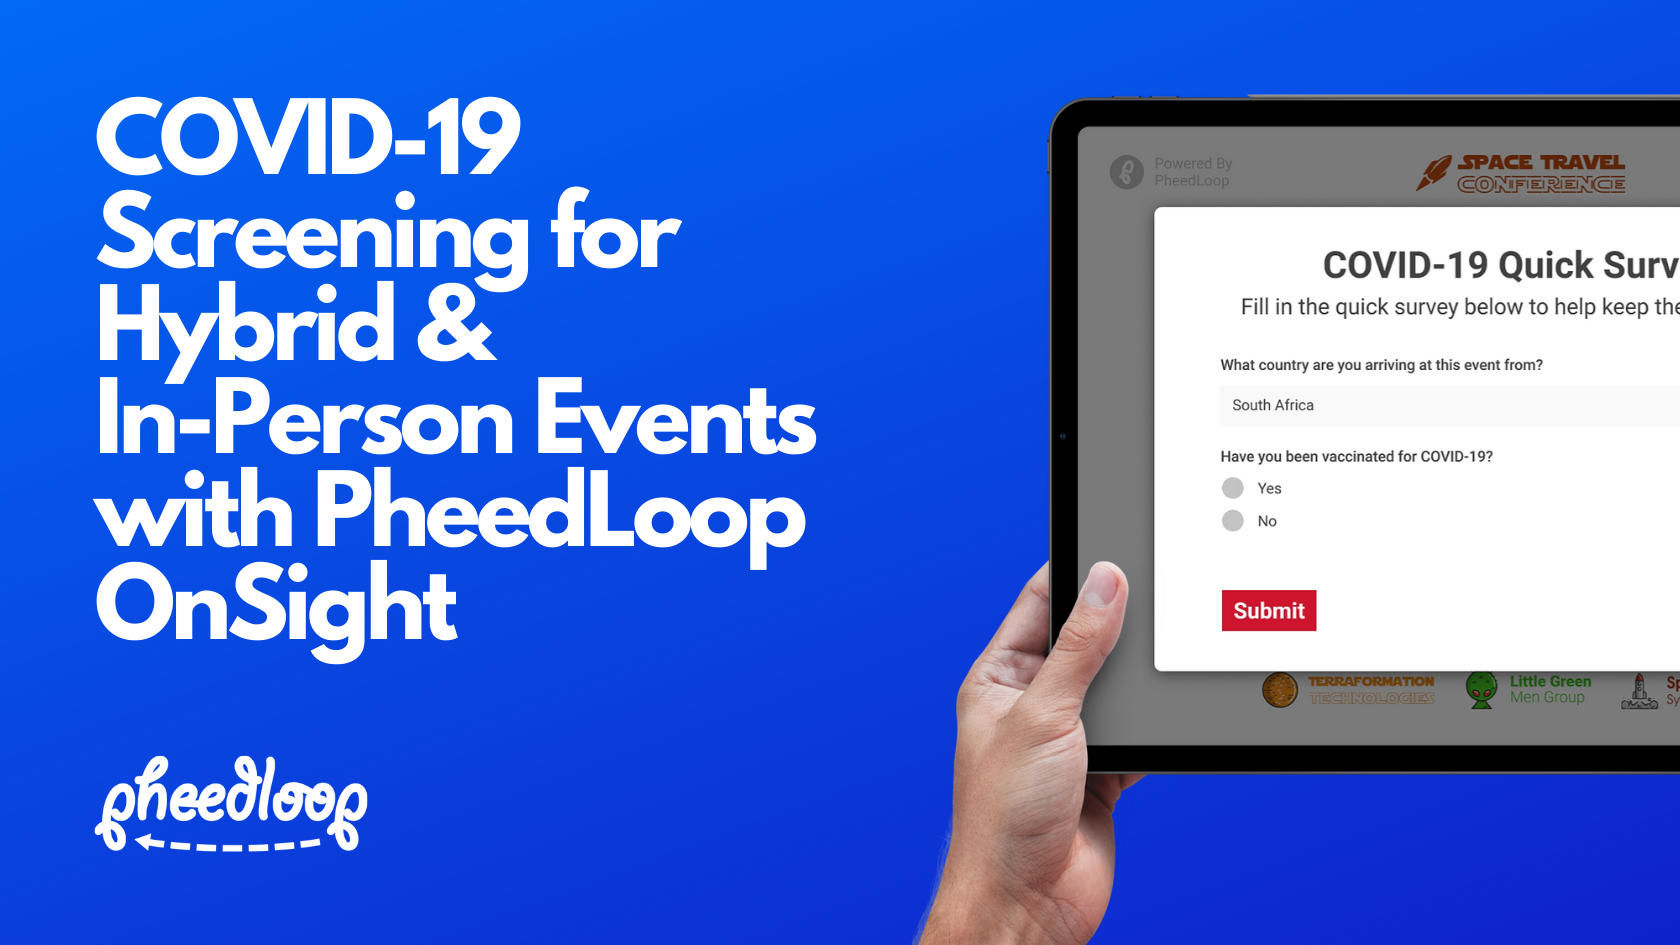 Introducing COVID-19 Screening for Hybrid and In-Person Events with PheedLoop OnSight Check-In and Badge Printing!